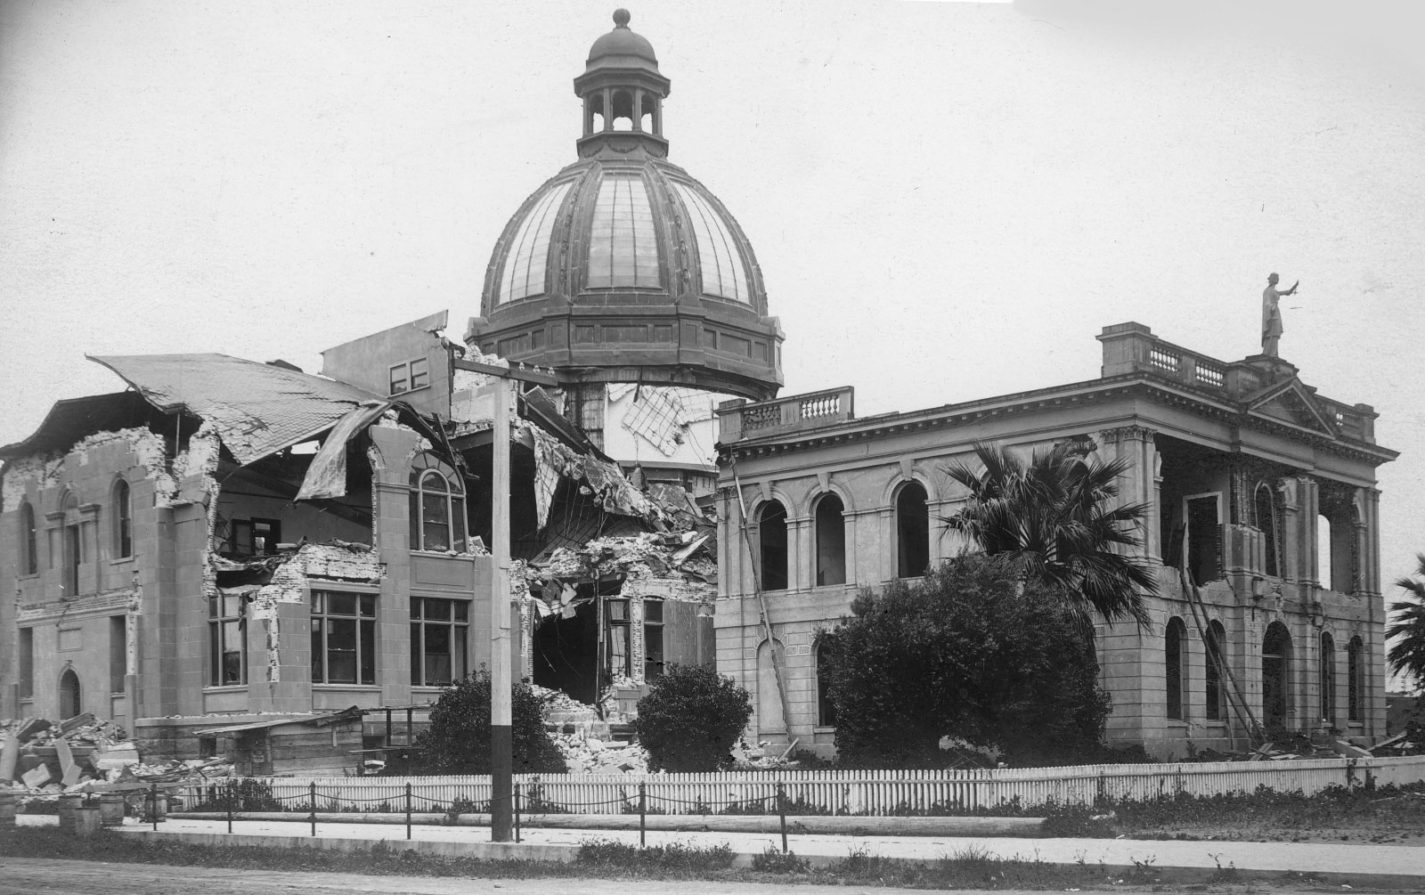 Archival photo showing the damage caused by the 1906 earthquake on the county courthouse